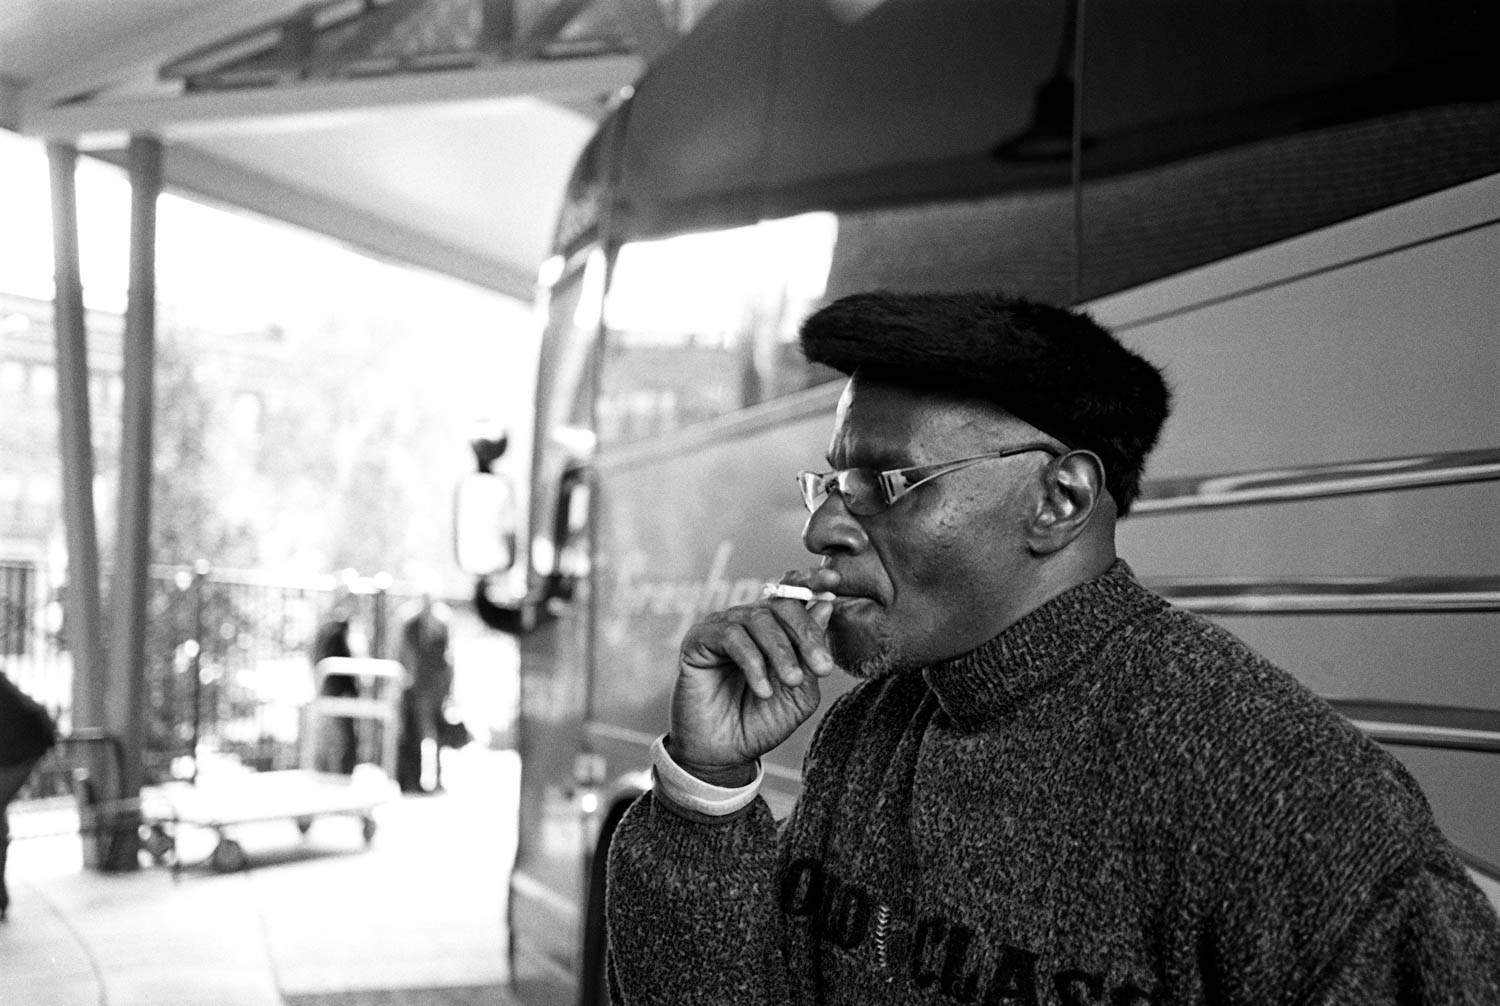 A black and white street photograph of a man smoking a cigarette while leaning against a bus in Binghamton, NY